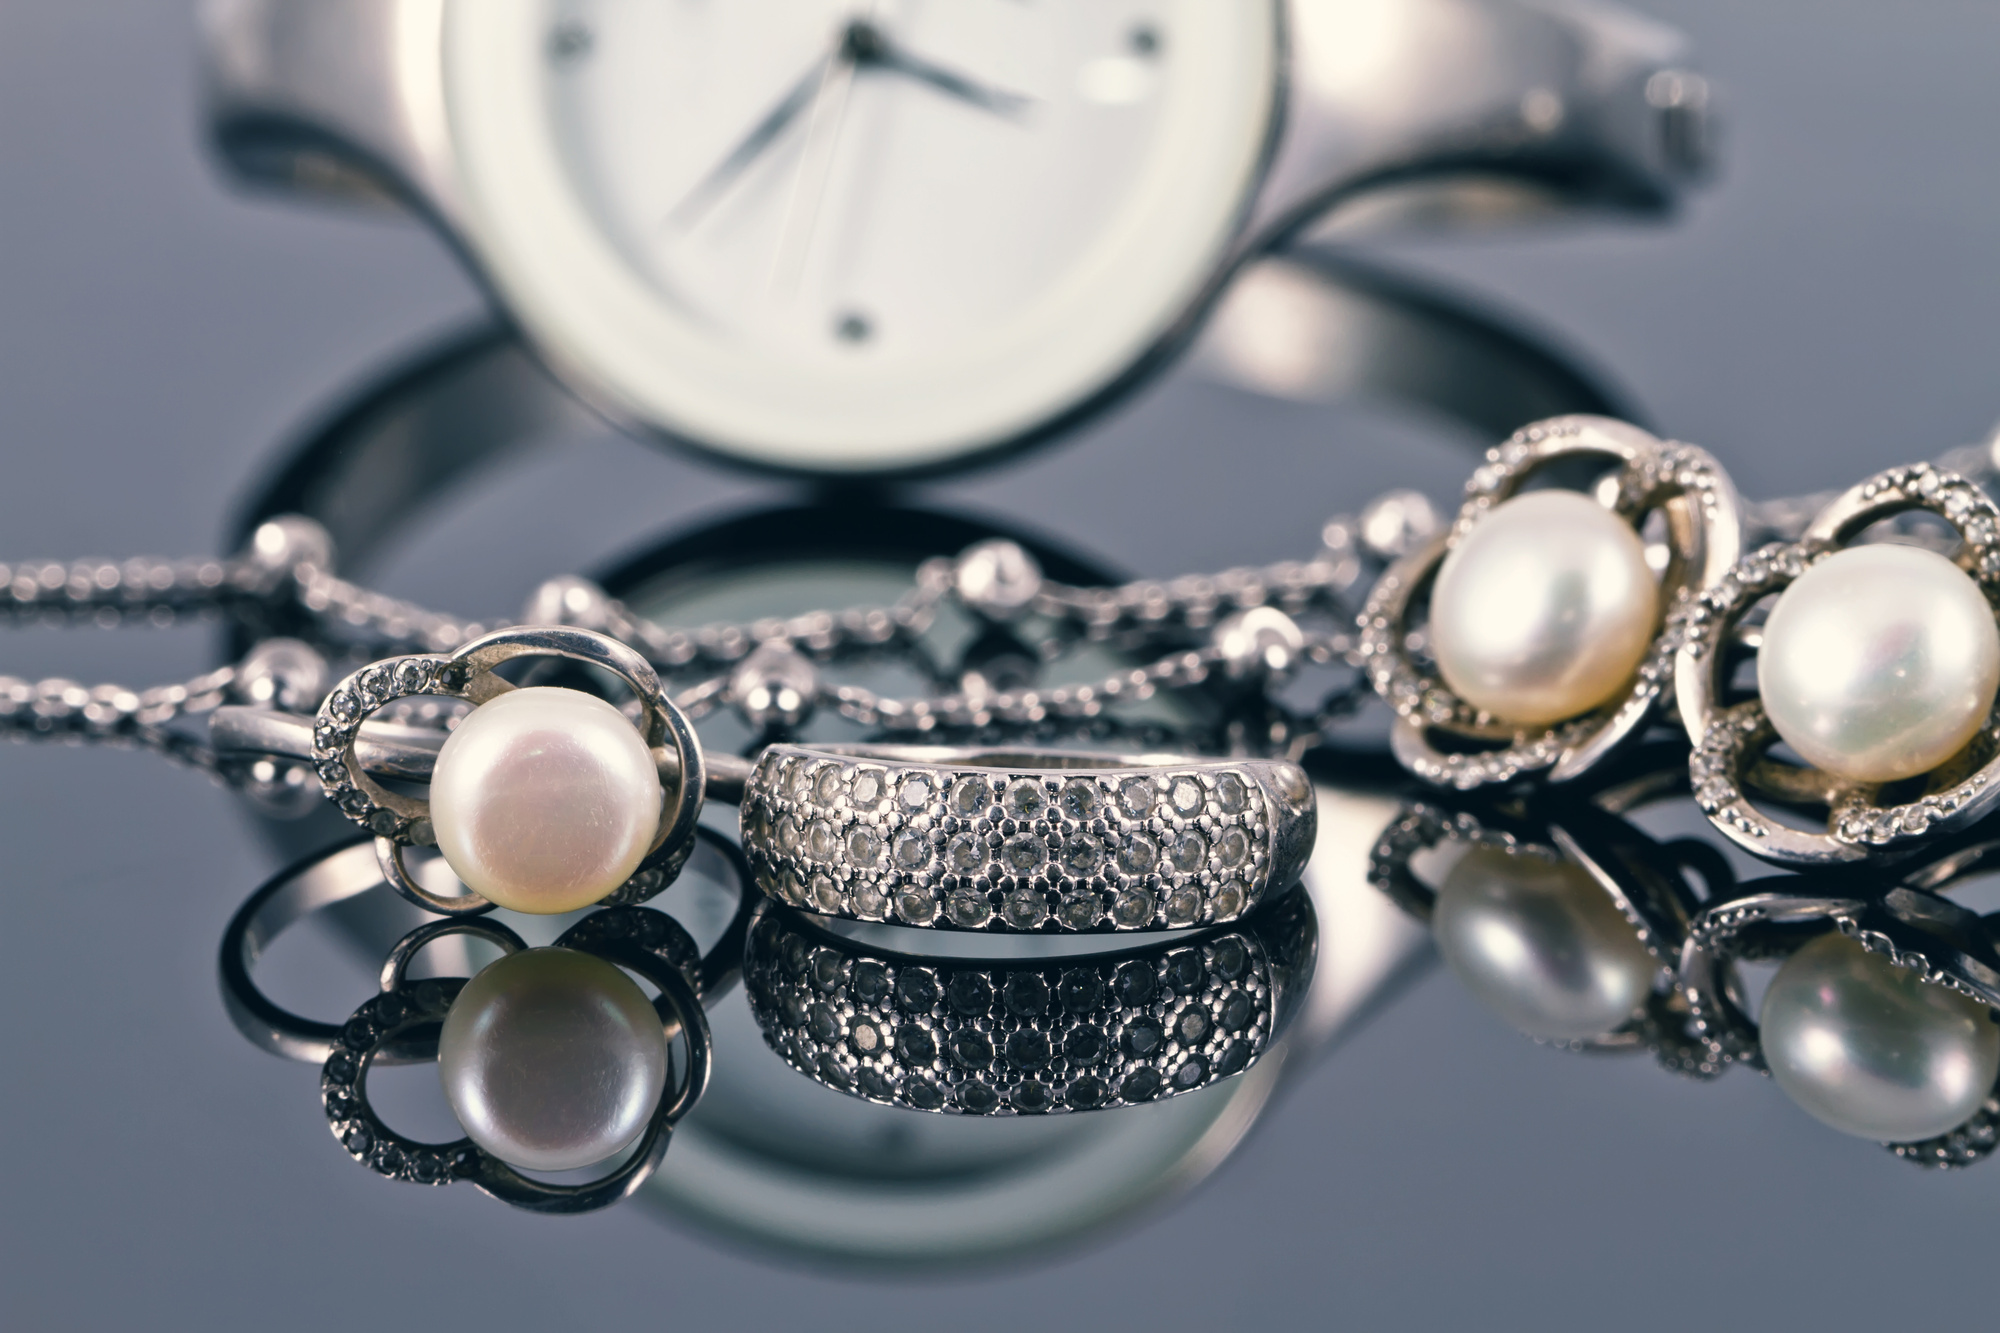 How To Start A Business Buying Wholesale Jewelry For Resale